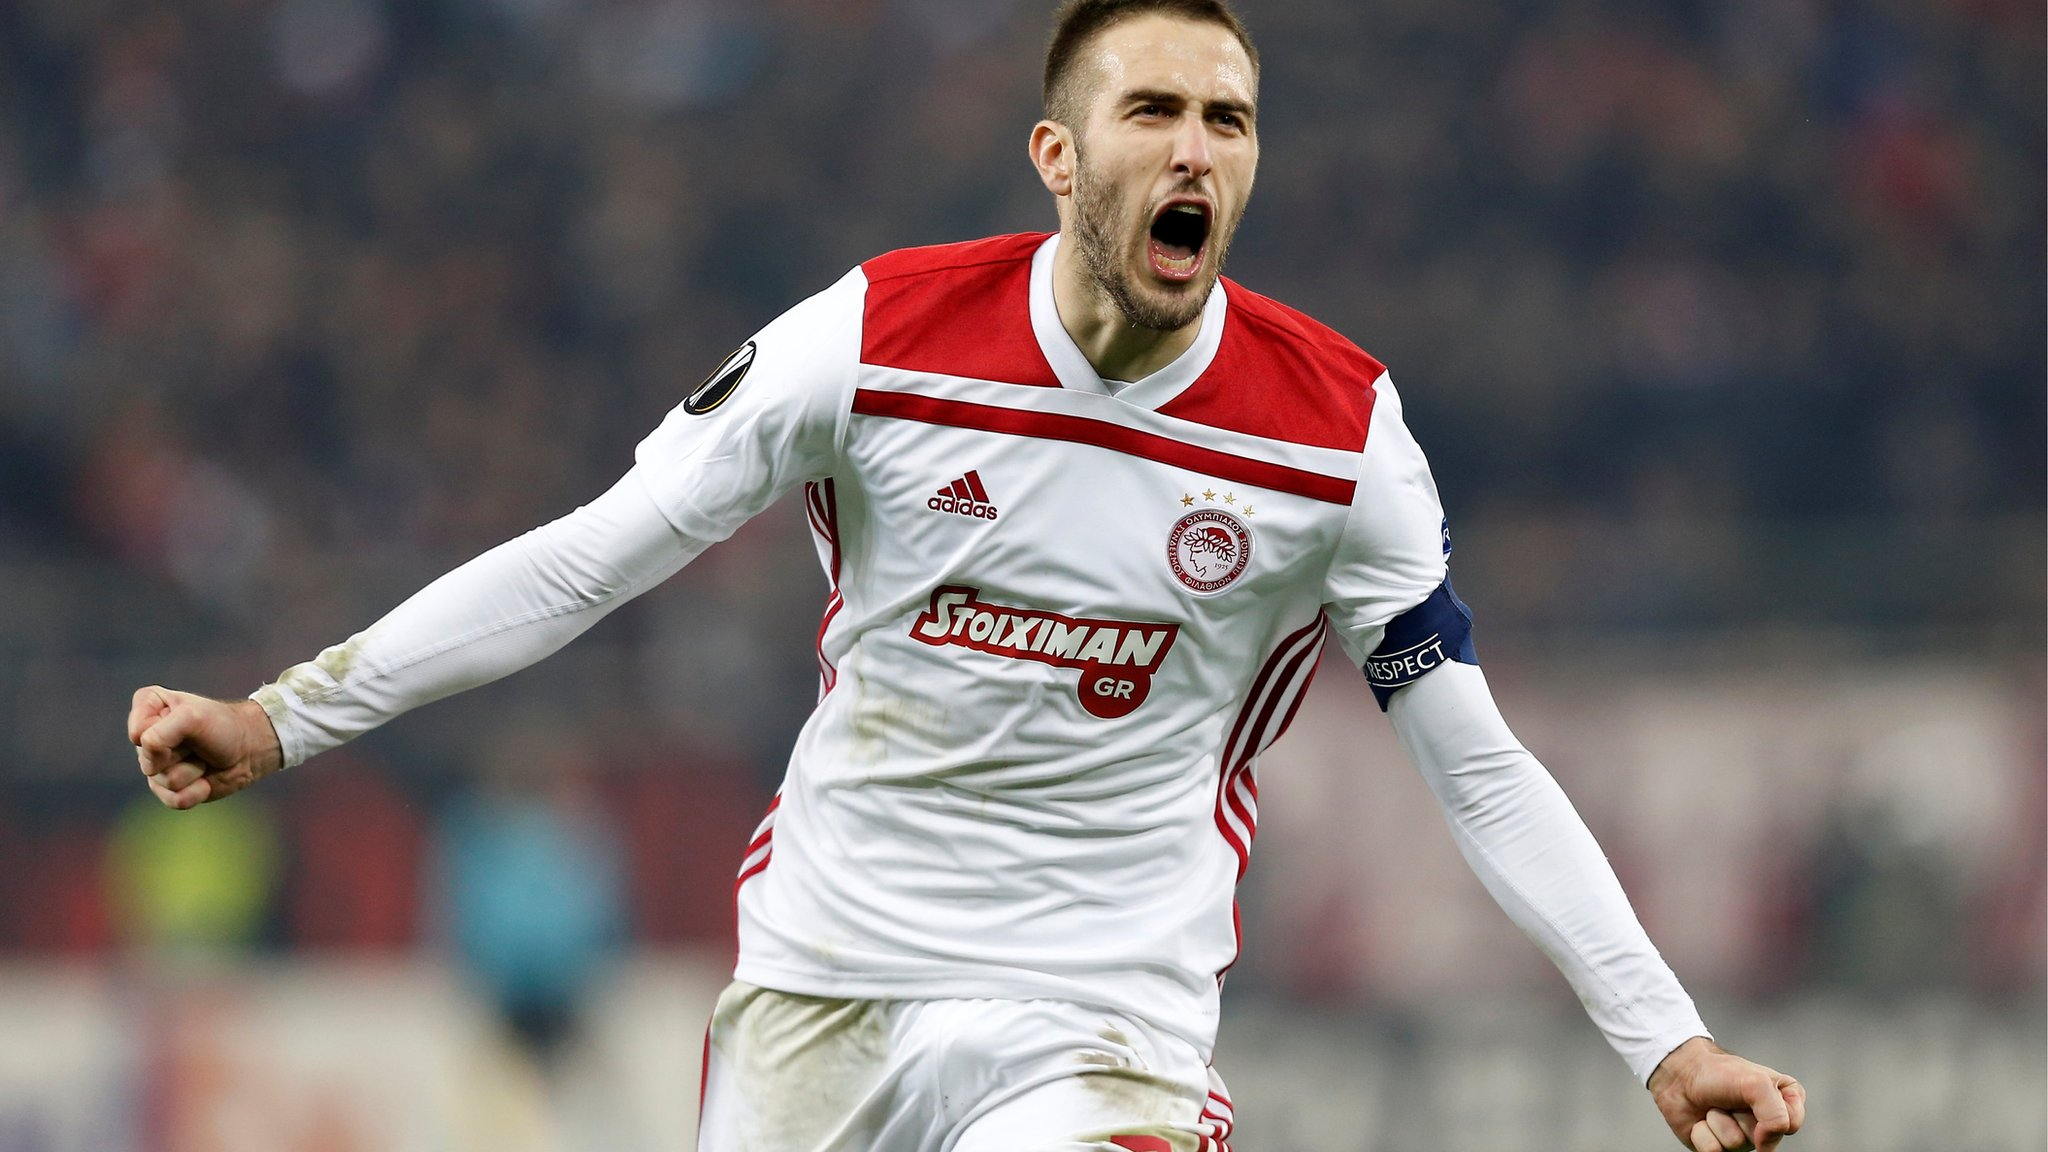 Olympiakos knock out AC Milan in 3-1 Europa League thriller